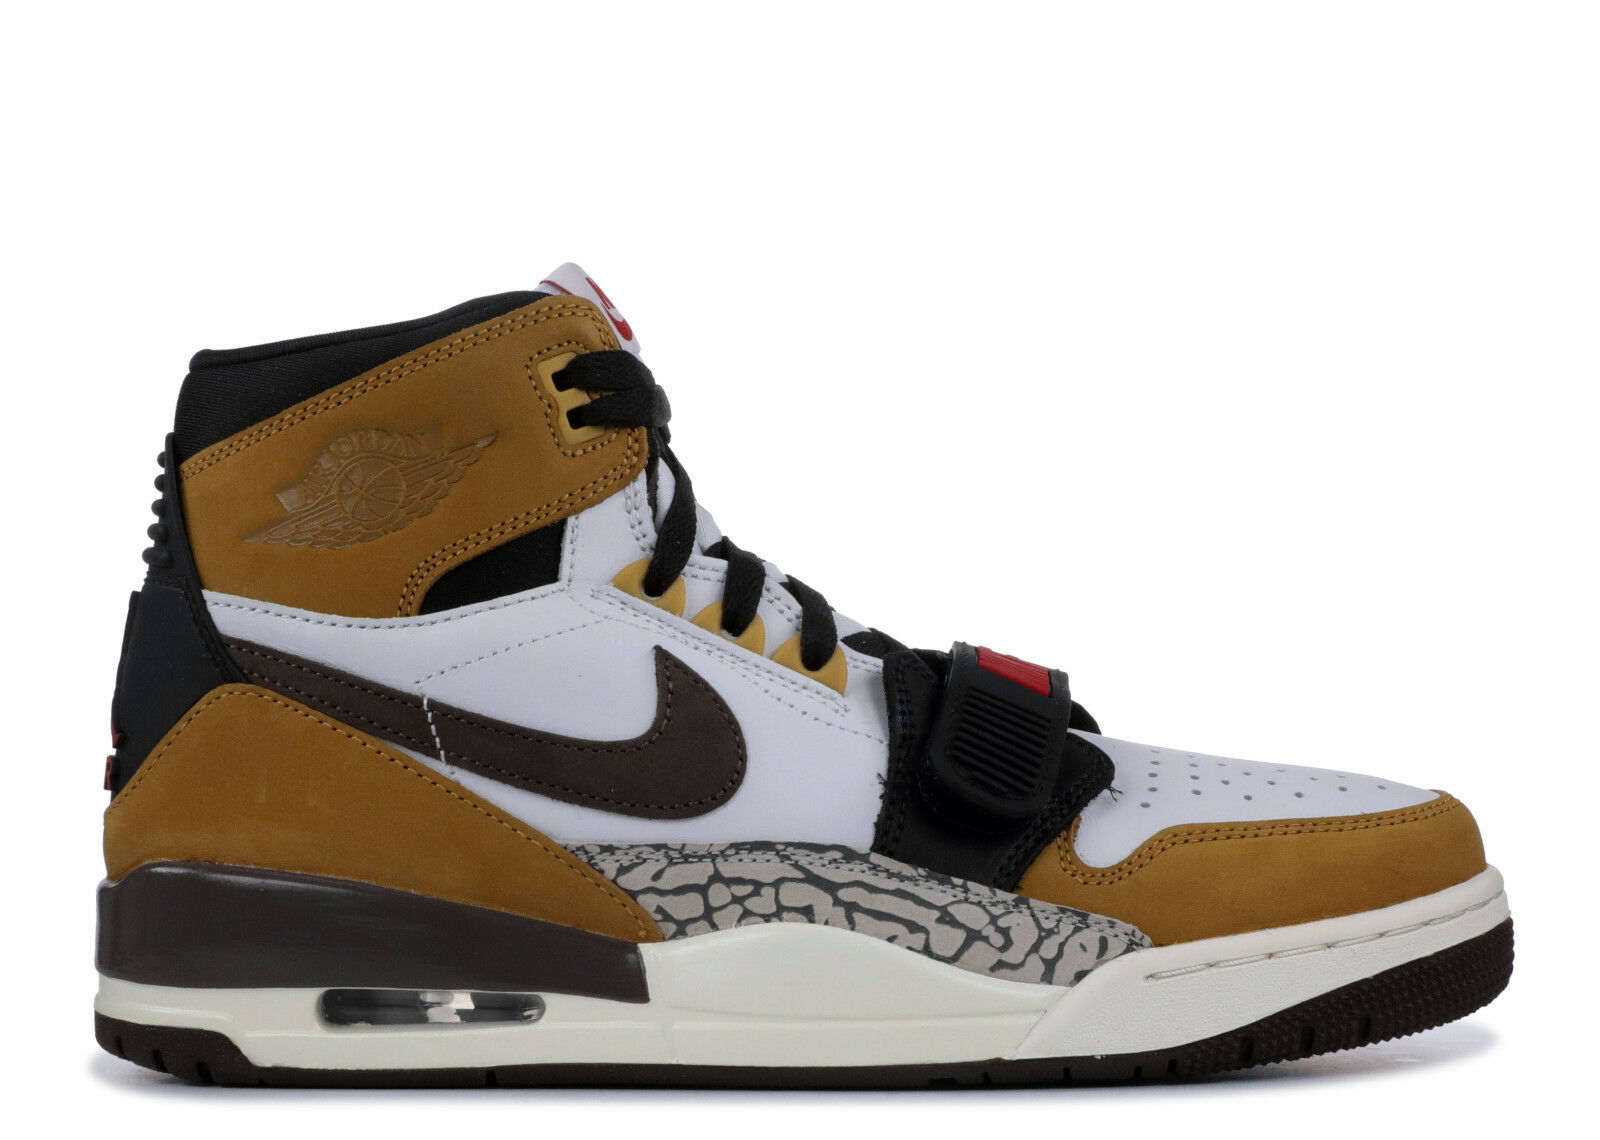 sports shoes b2d22 4de1a Men s Brand New Air Jordan Legacy 312 Athletic Fashion Sneakers